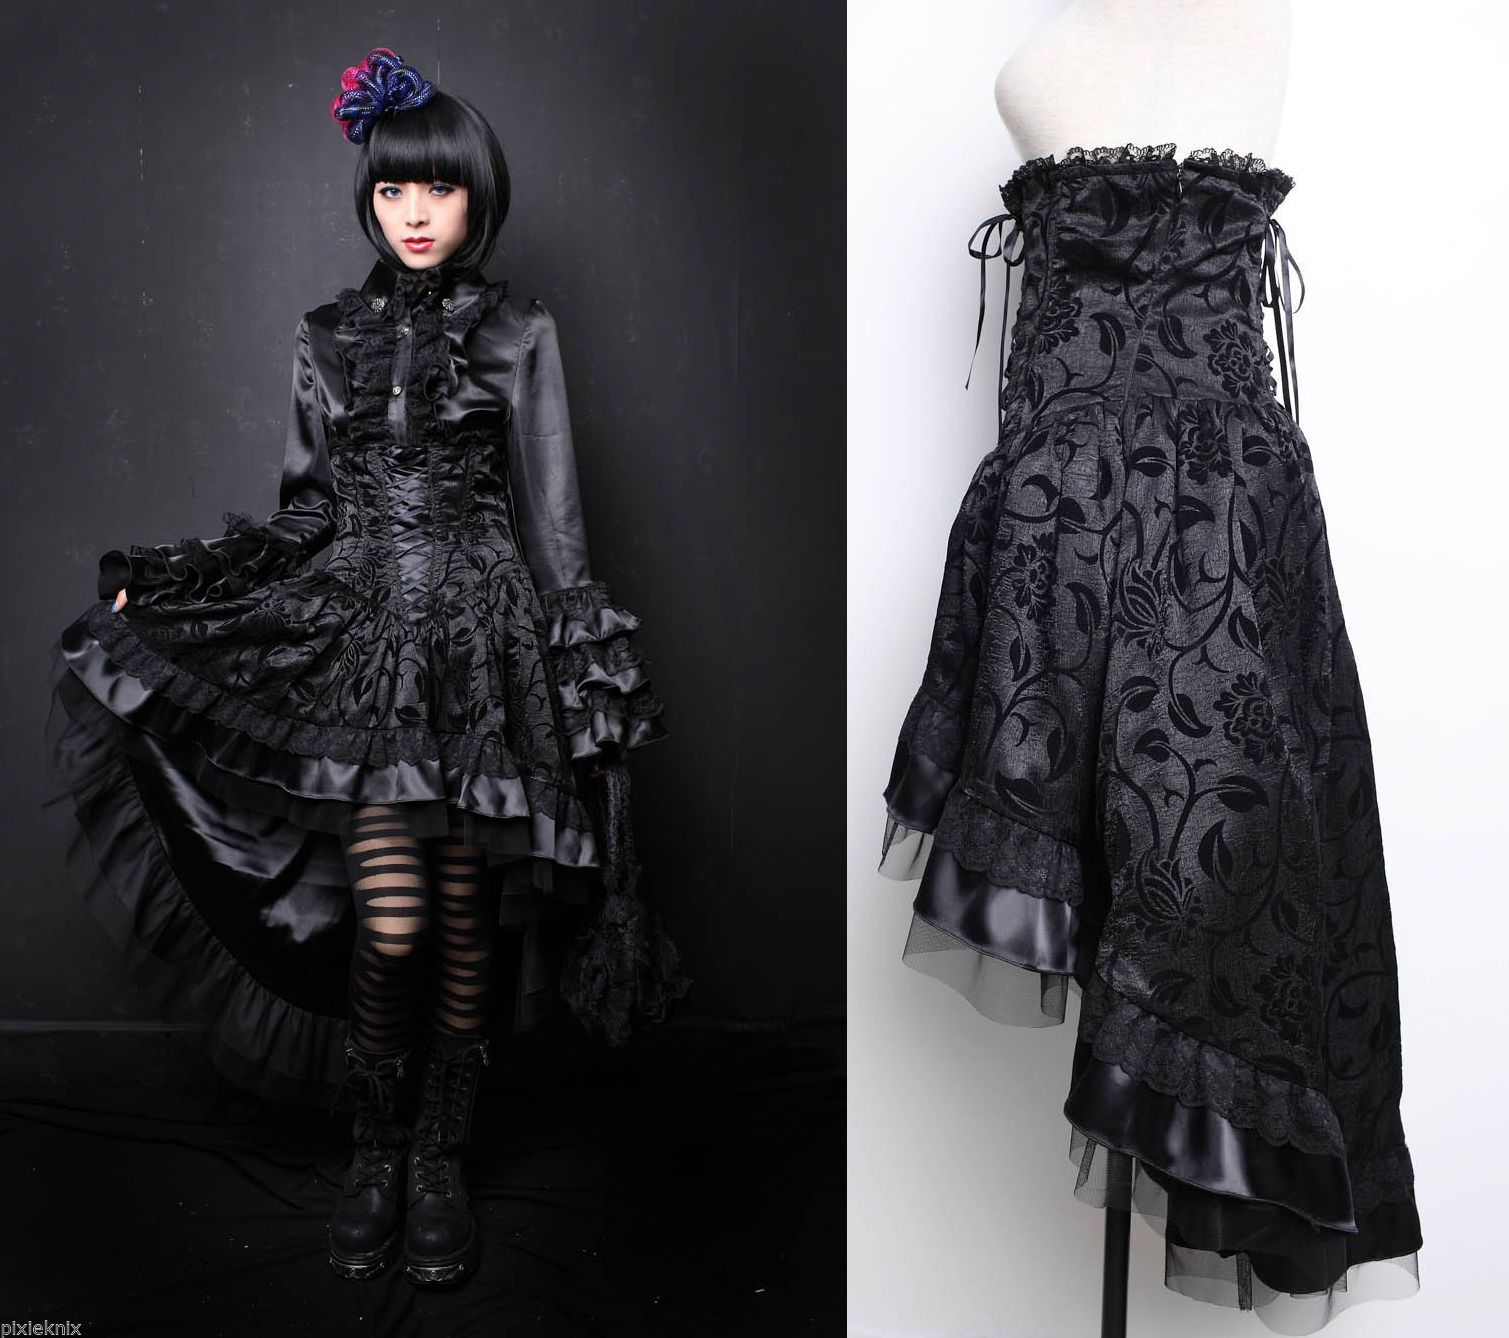 Gothic style dresses skirts